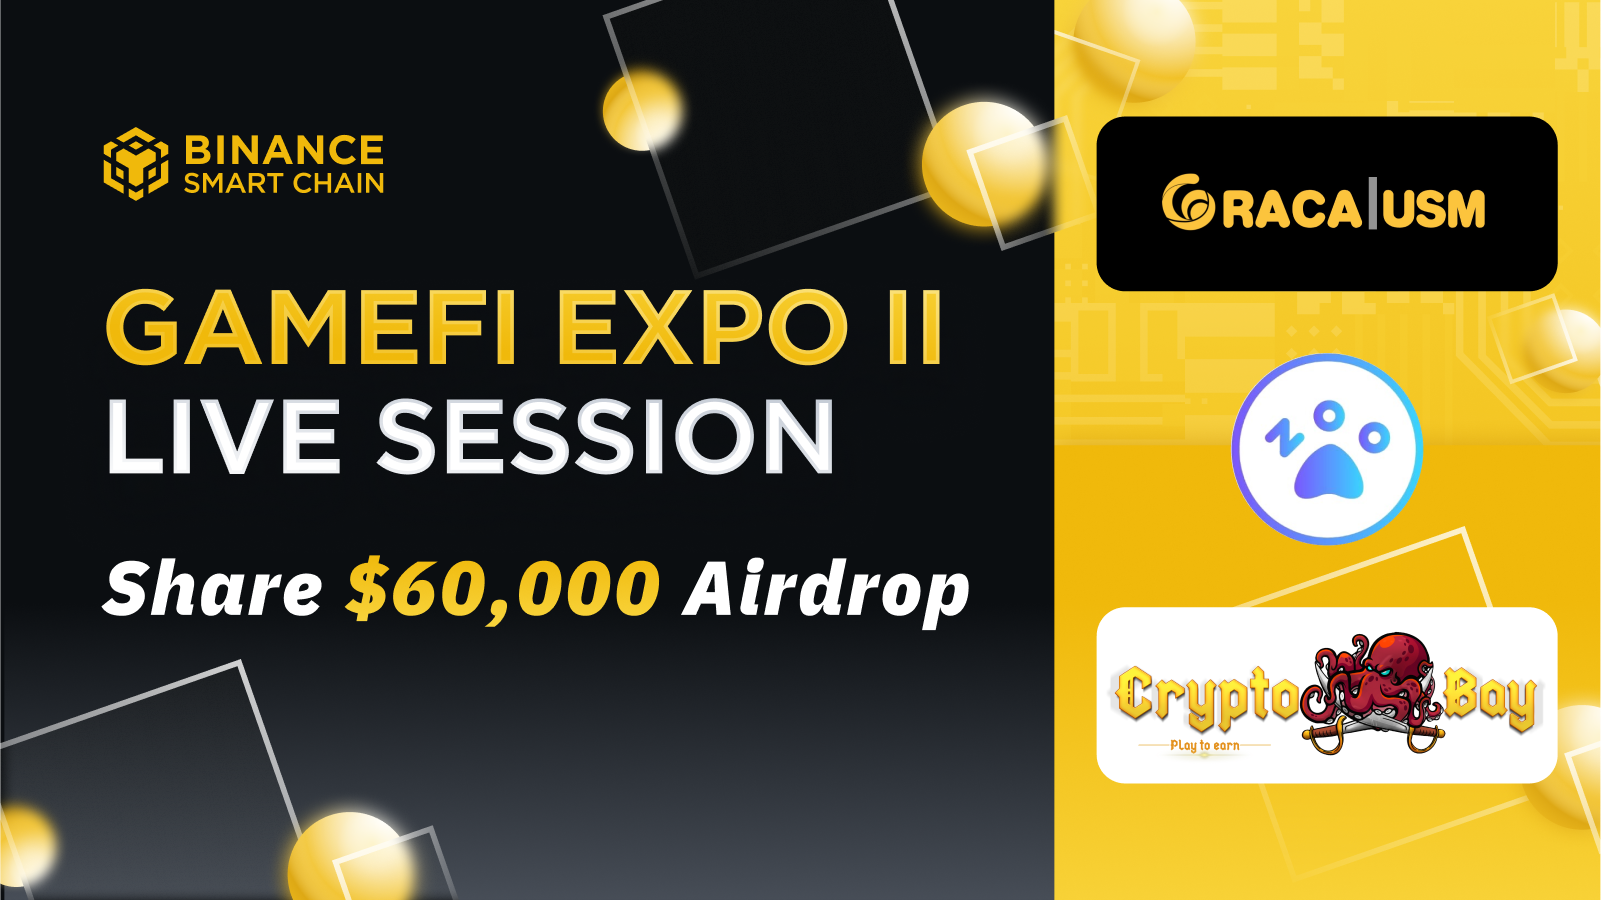 BSC GameFi Expo: 3 new games, $60k in airdrops, and special events